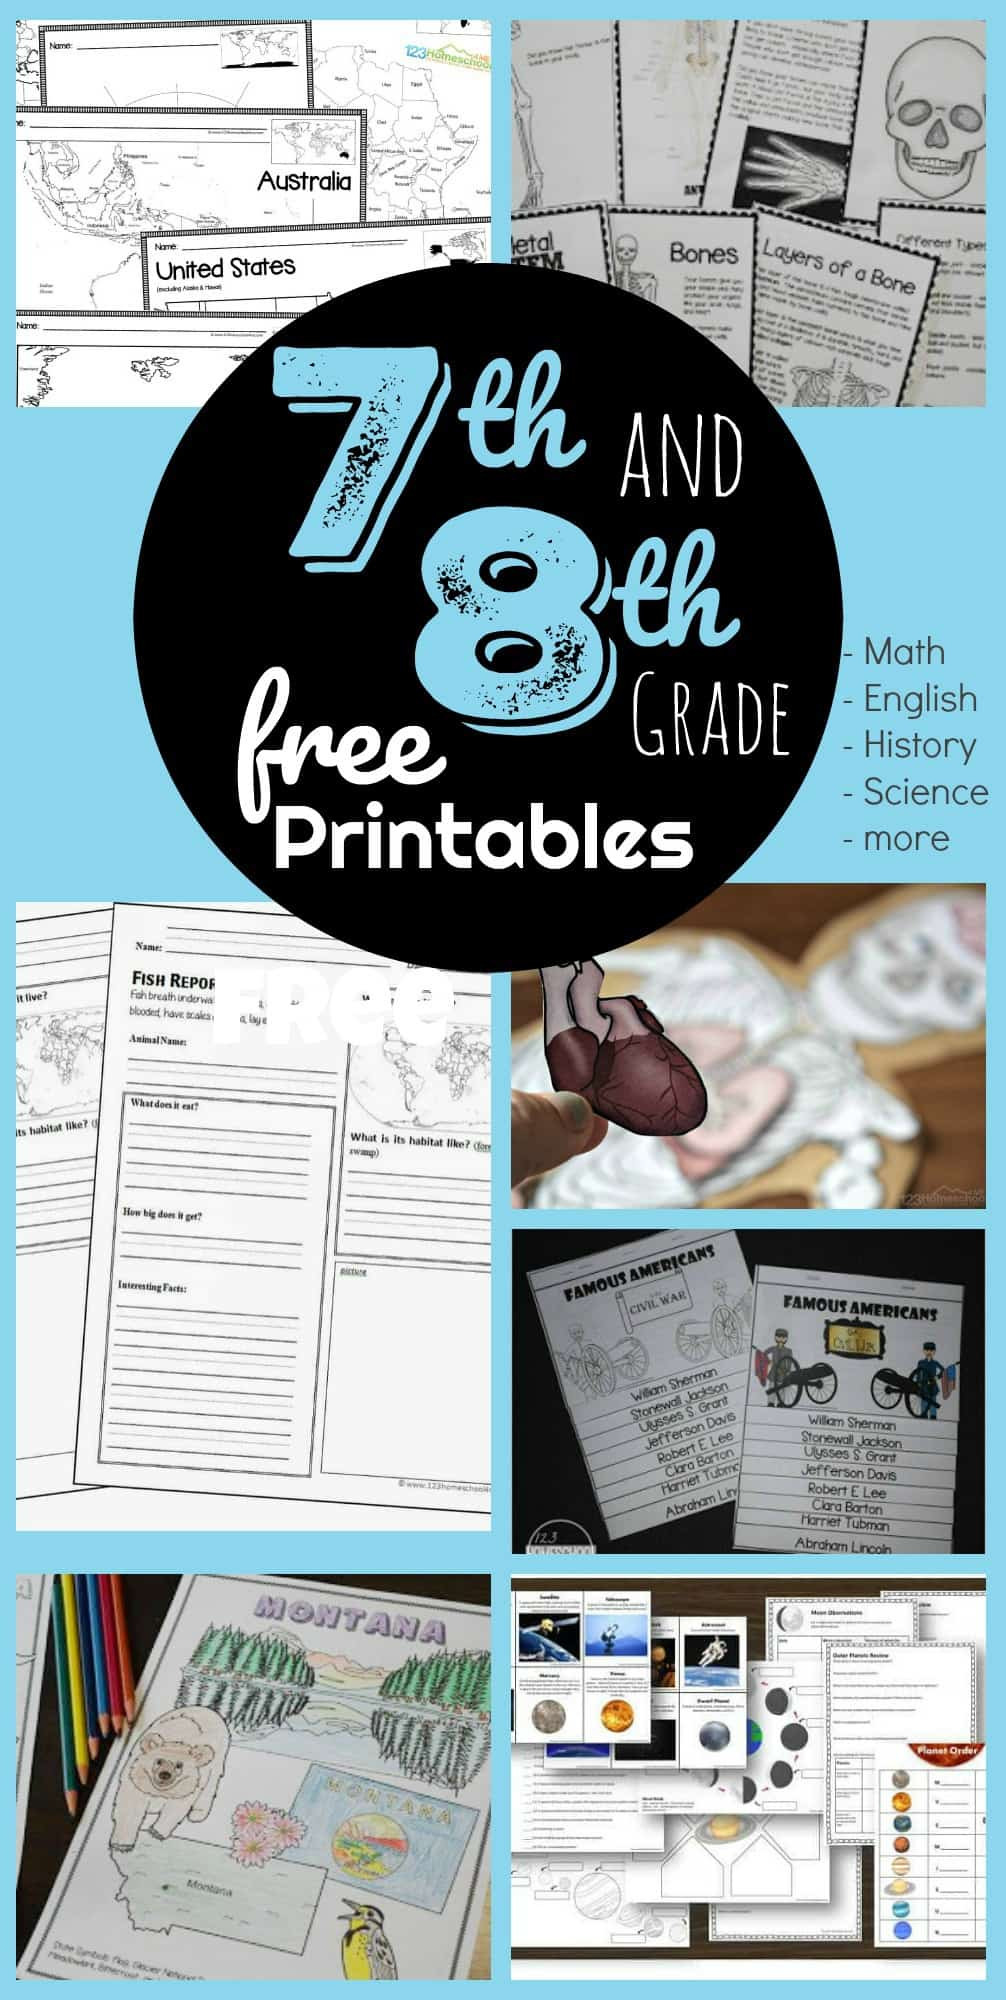 Geography Worksheets Middle School Pdf Free 7th & 8th Grade Worksheets